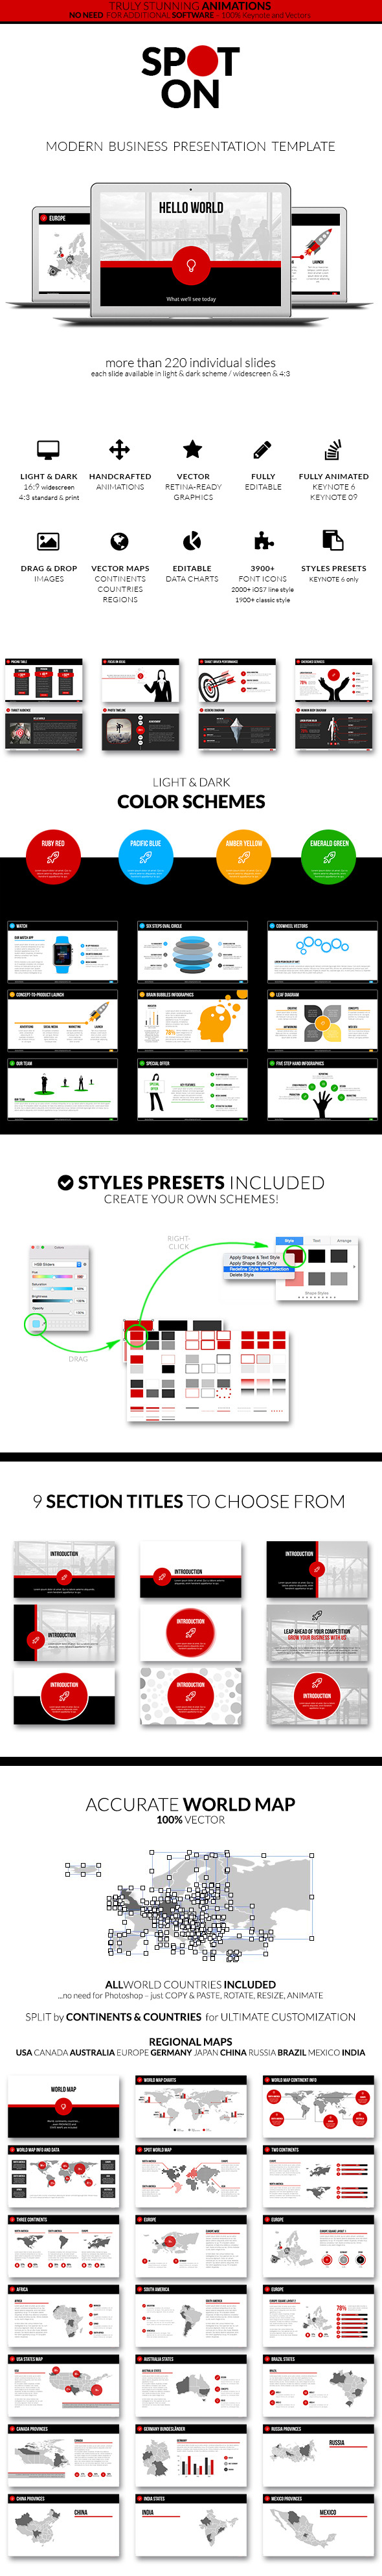 GraphicRiver Spot On Keynote Presentation Template 9742118